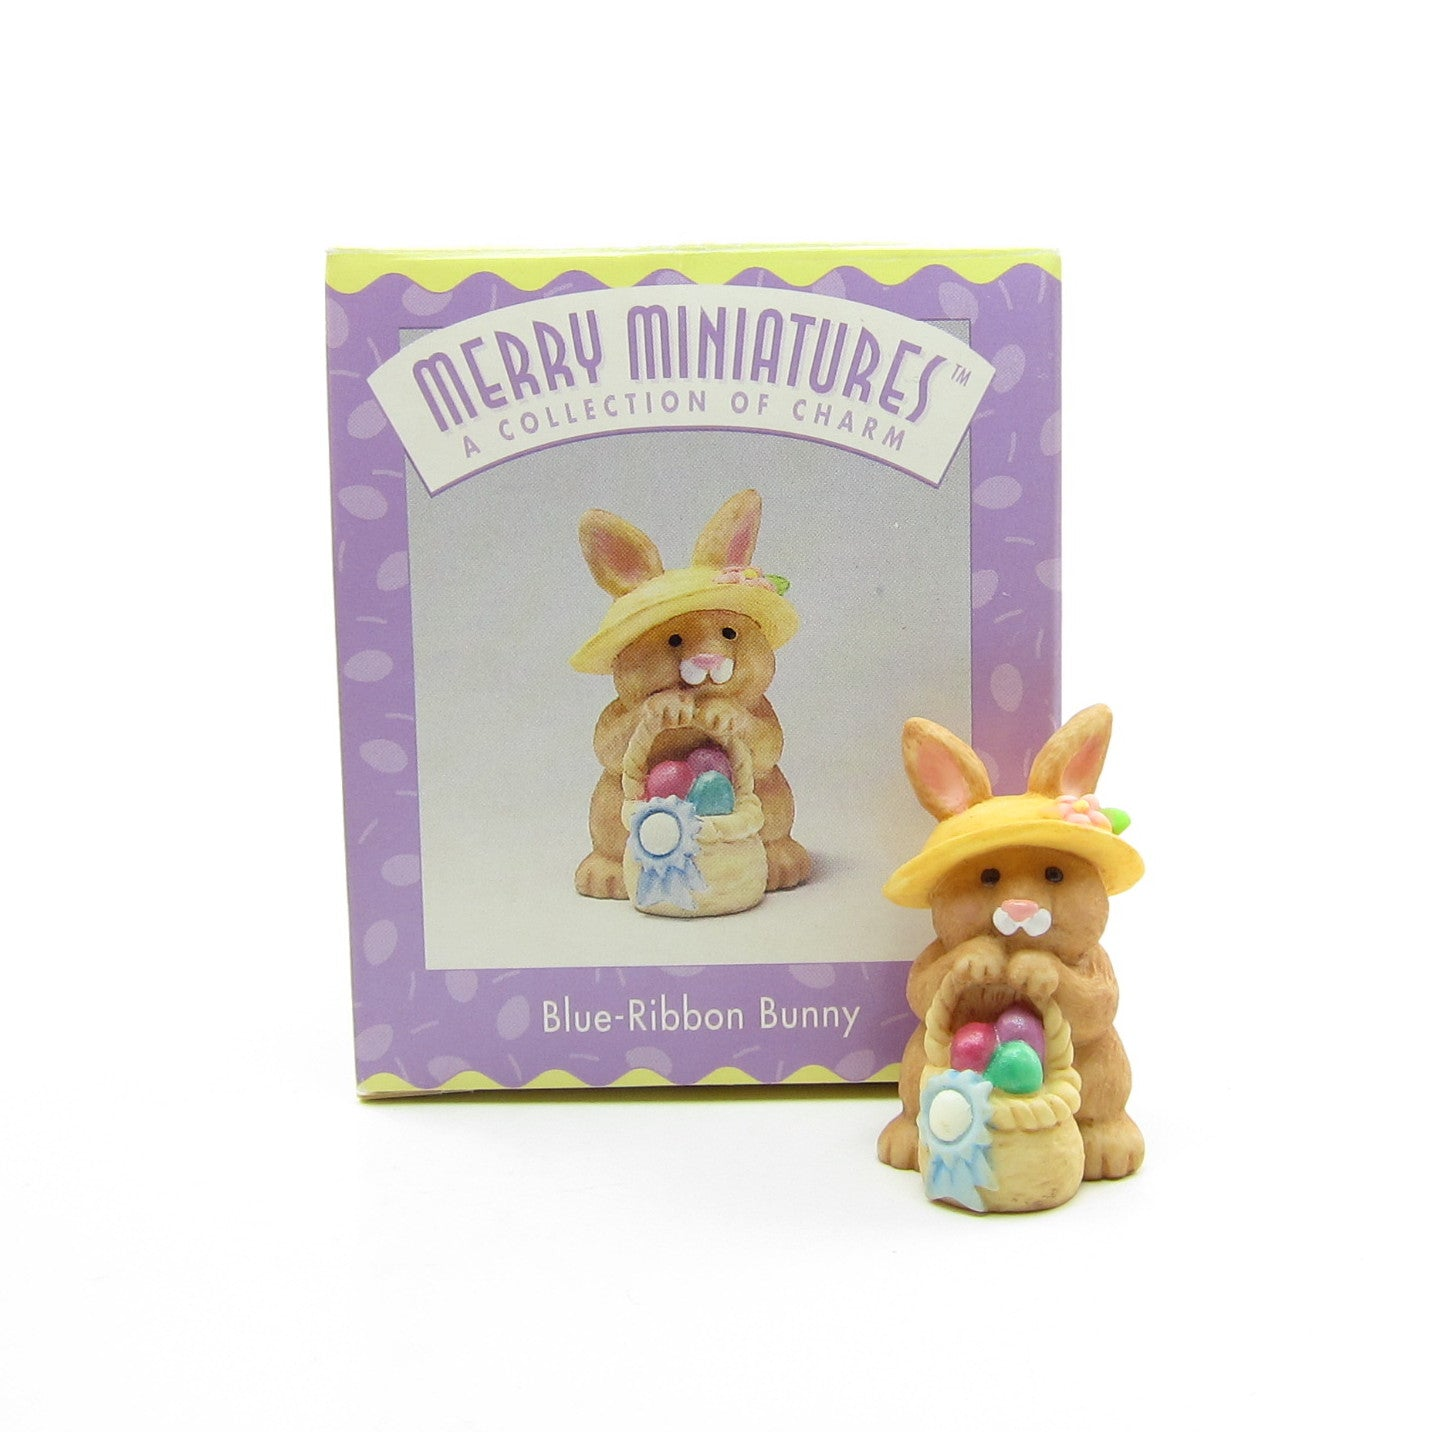 Hallmark Merry Miniatures Blue-Ribbon Bunny